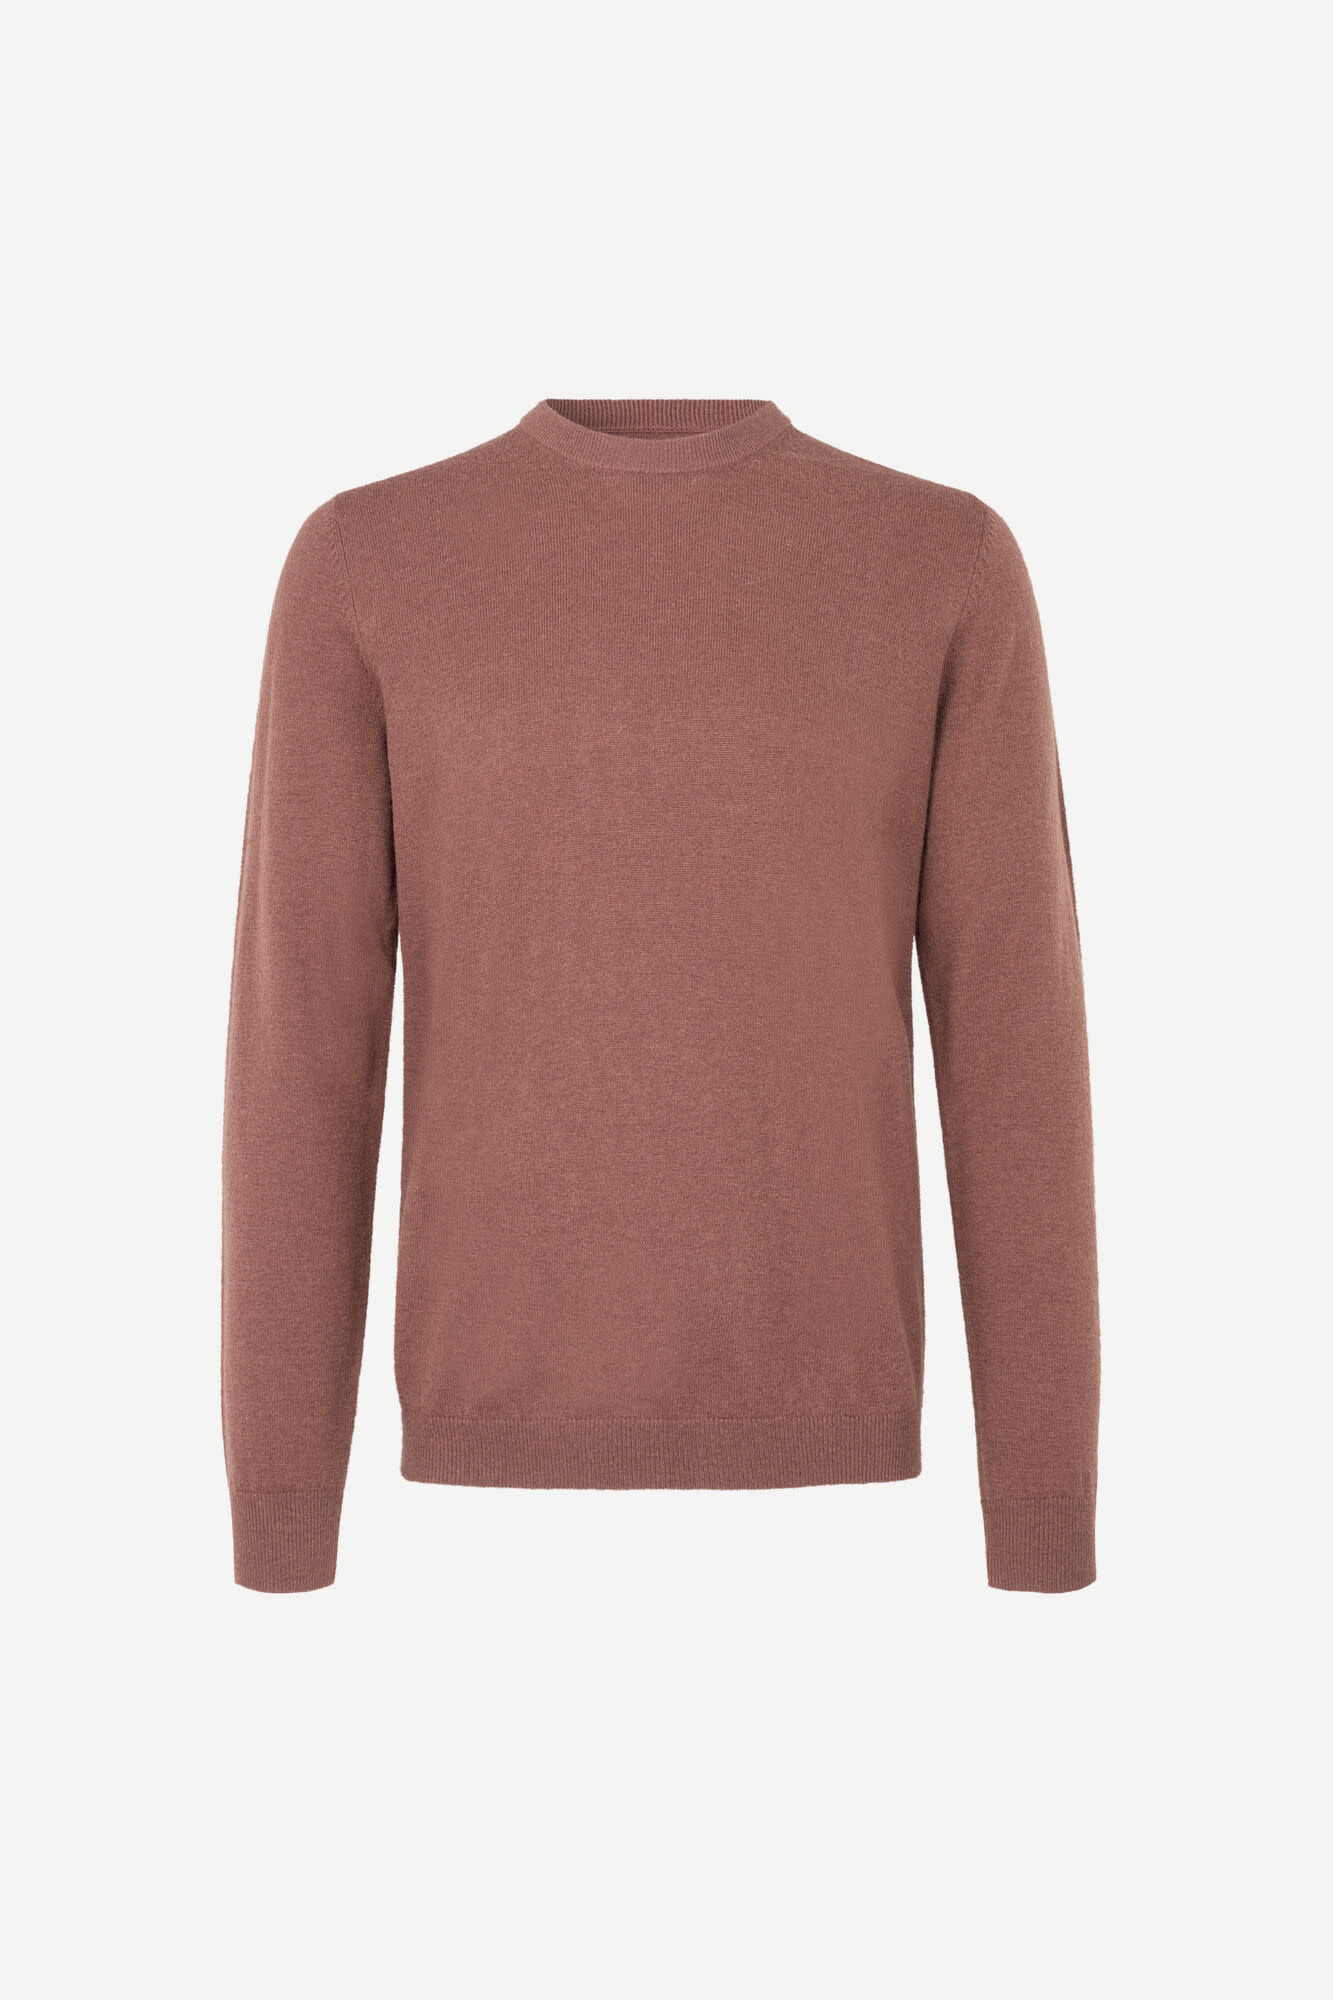 Gees O-N 132 Cinnamon Brown Wool Jumper-1